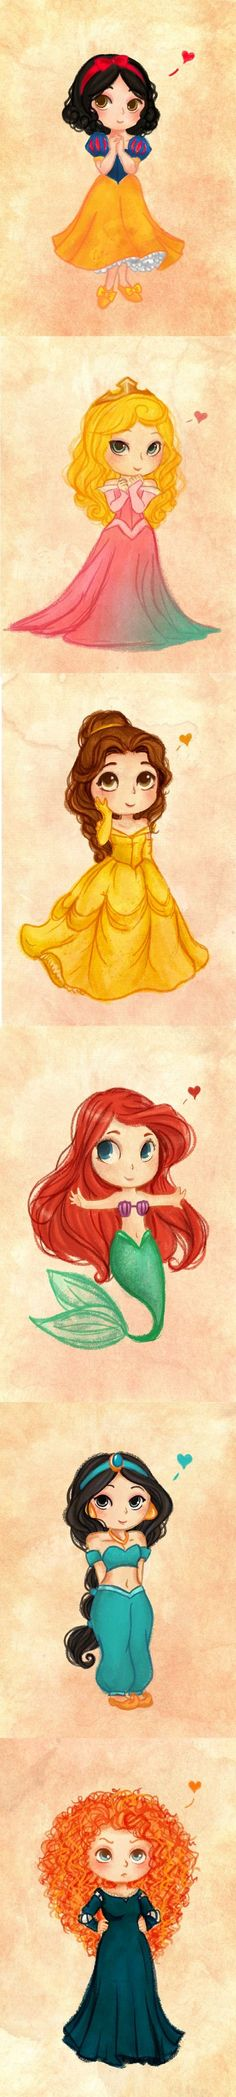 Have you always had a sneaking suspicion that you just might be a Disney princess? cartoon adorable Are You A Disney Princess? Disney Pixar, Walt Disney, Cute Disney, Disney Dream, Disney Girls, Disney And Dreamworks, Disney Magic, Disney Art, Disney Characters